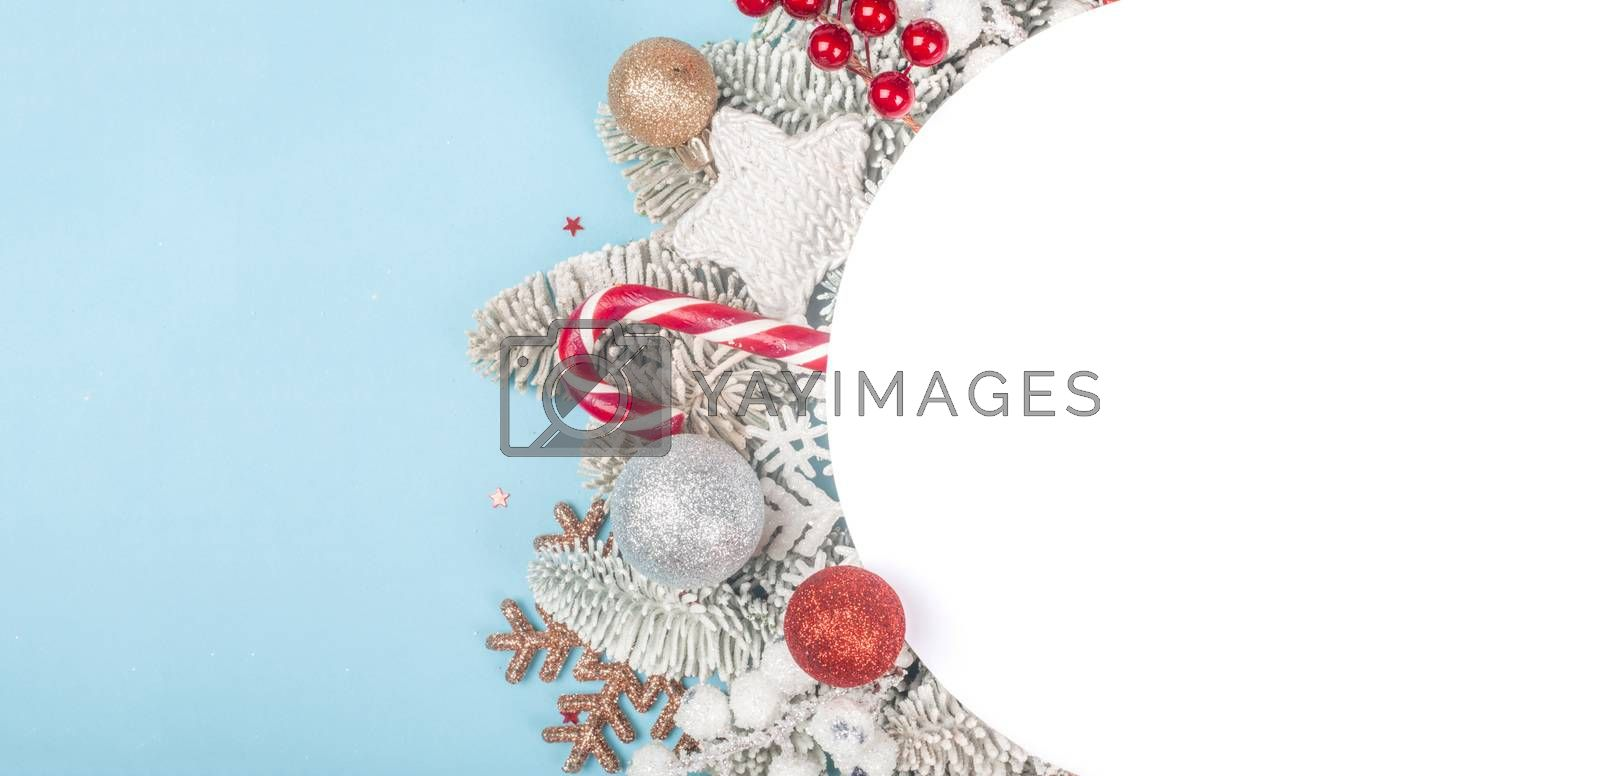 Royalty free image of Frost fir tree and Christmas decor by destillat